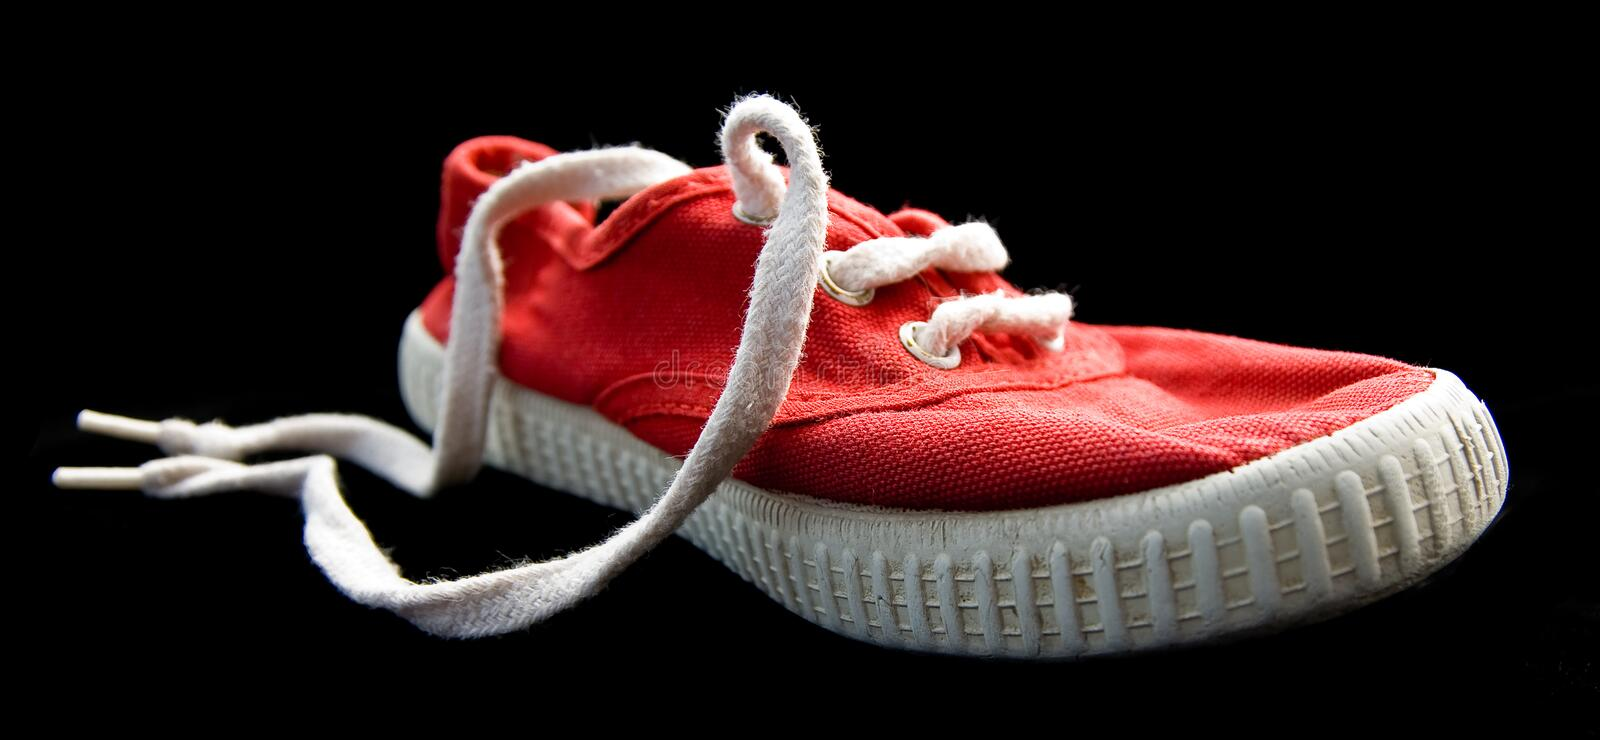 Download Shoe Laces With Isolated On Black Stock Image - Image: 10995181